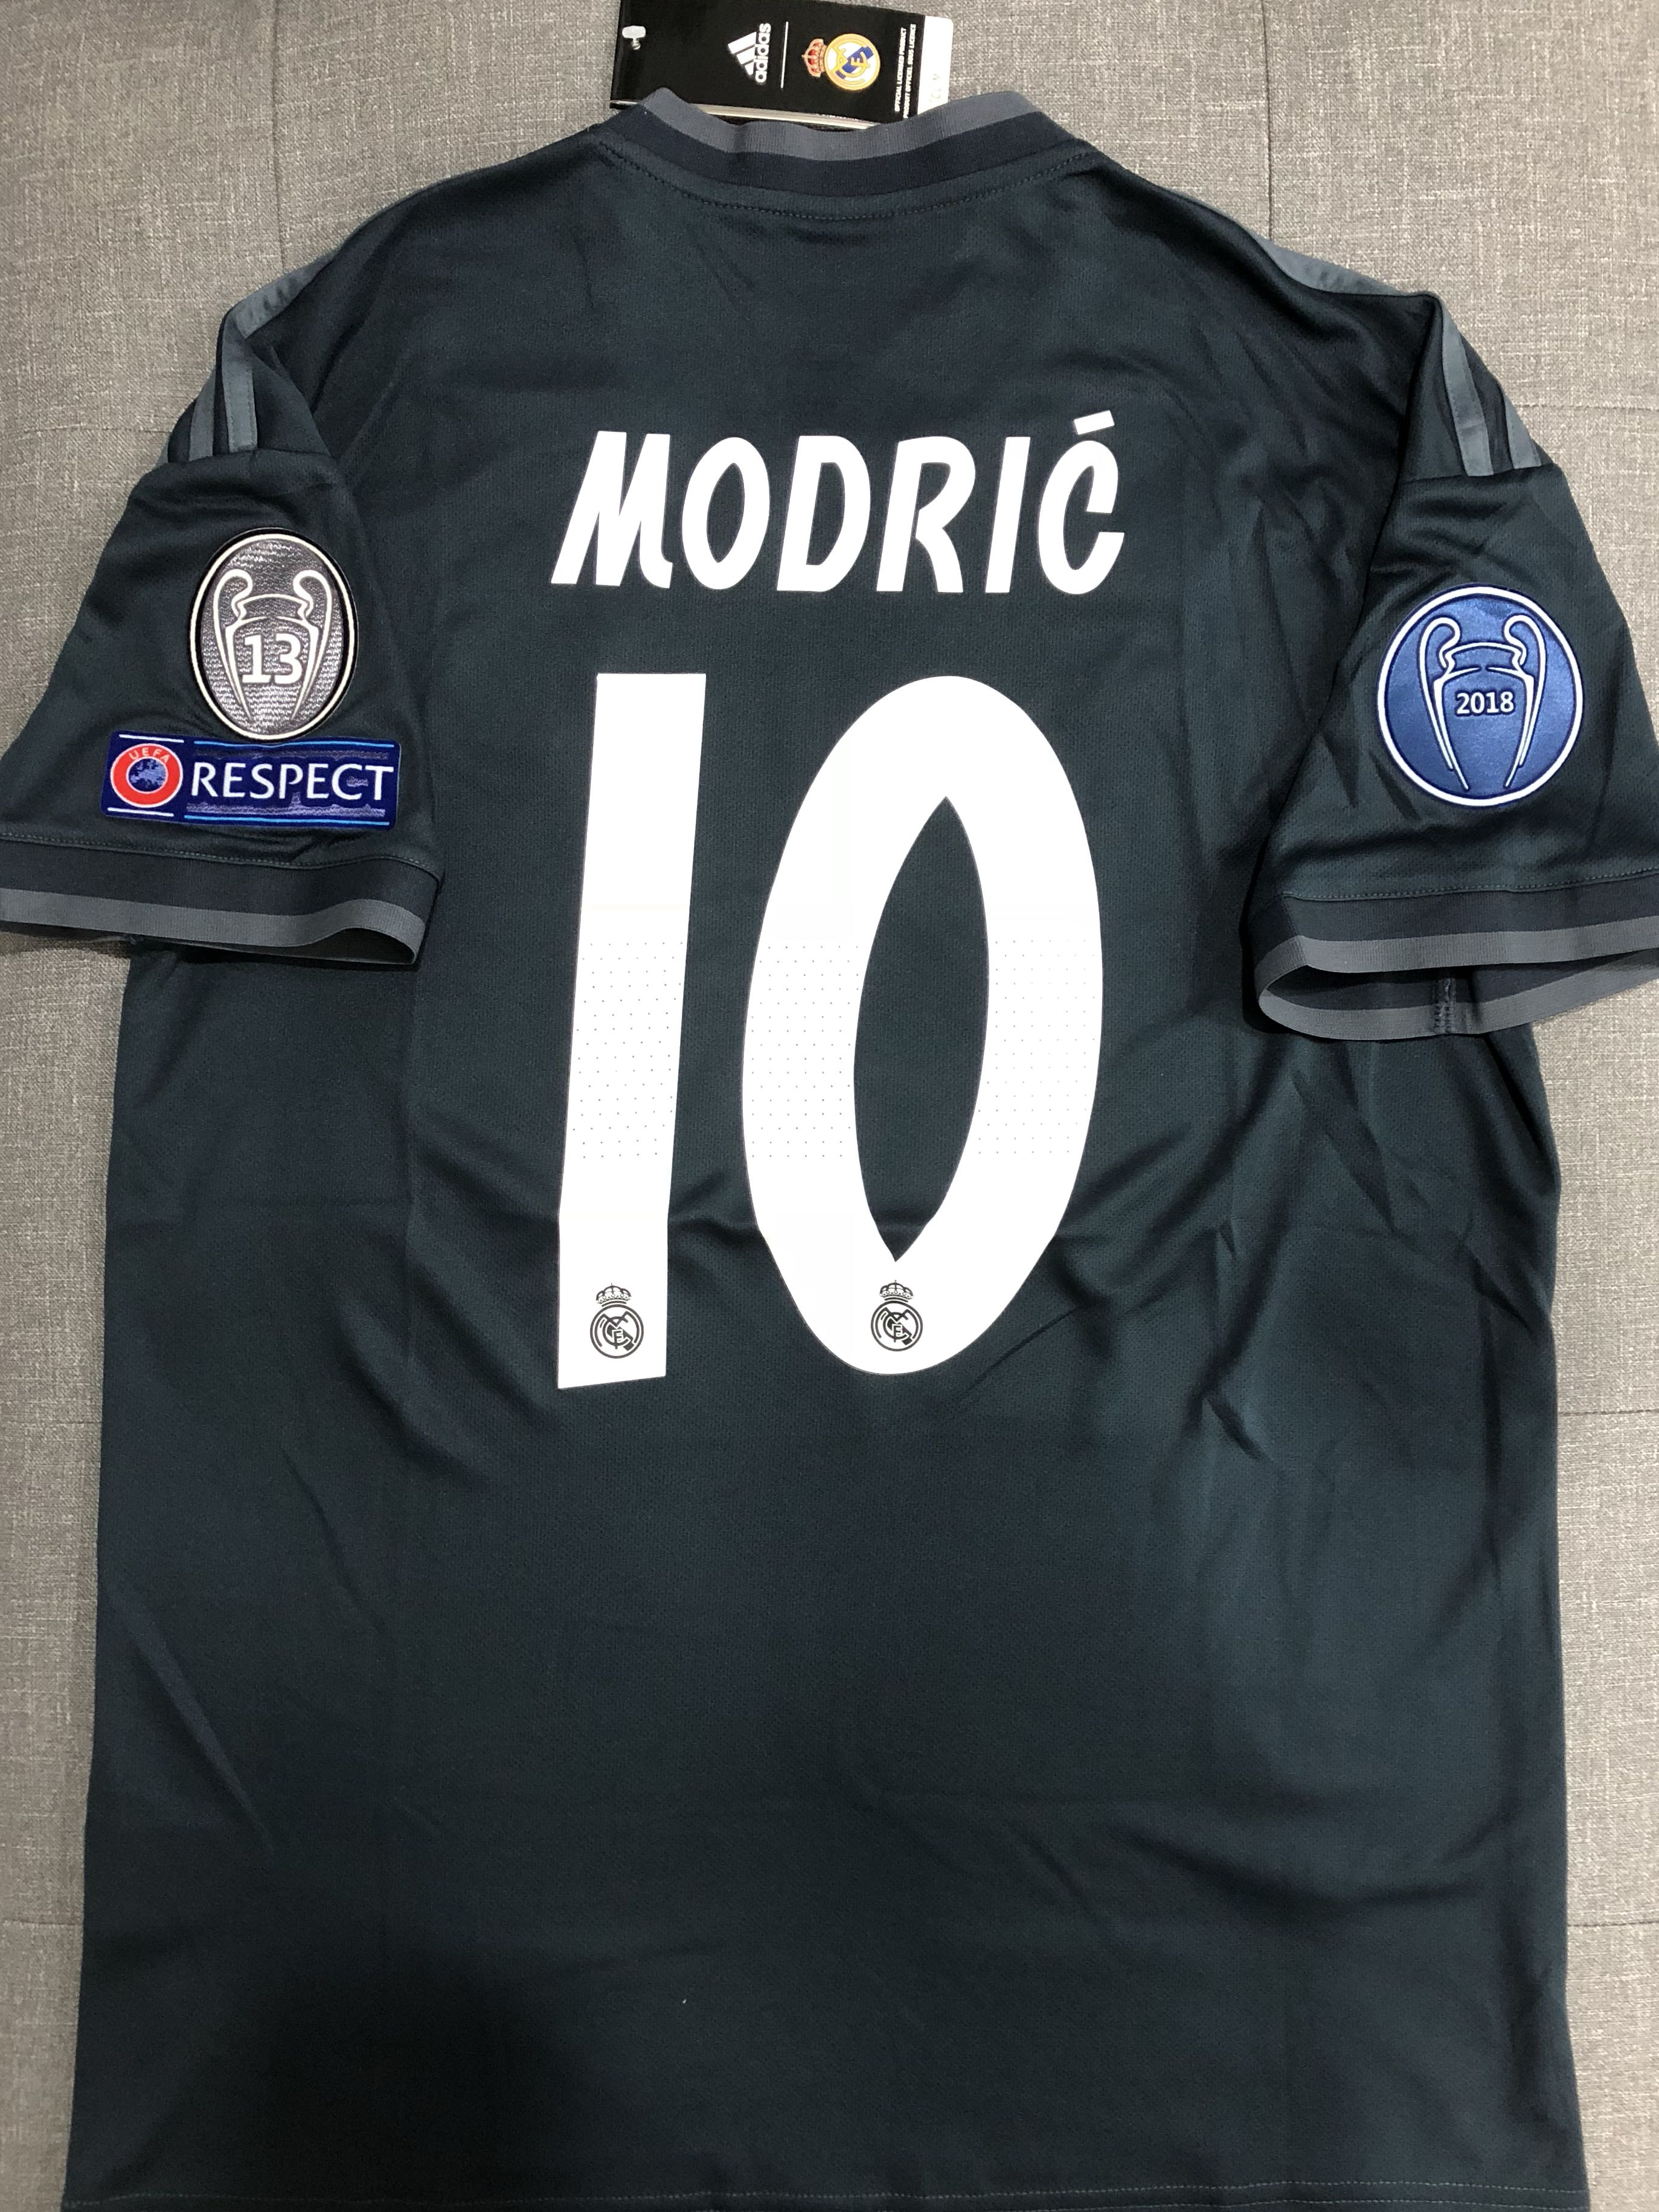 buy popular e35dc 3a40b In Stock: Real Madrid Away Modric Jersey, Sports, Sports ...